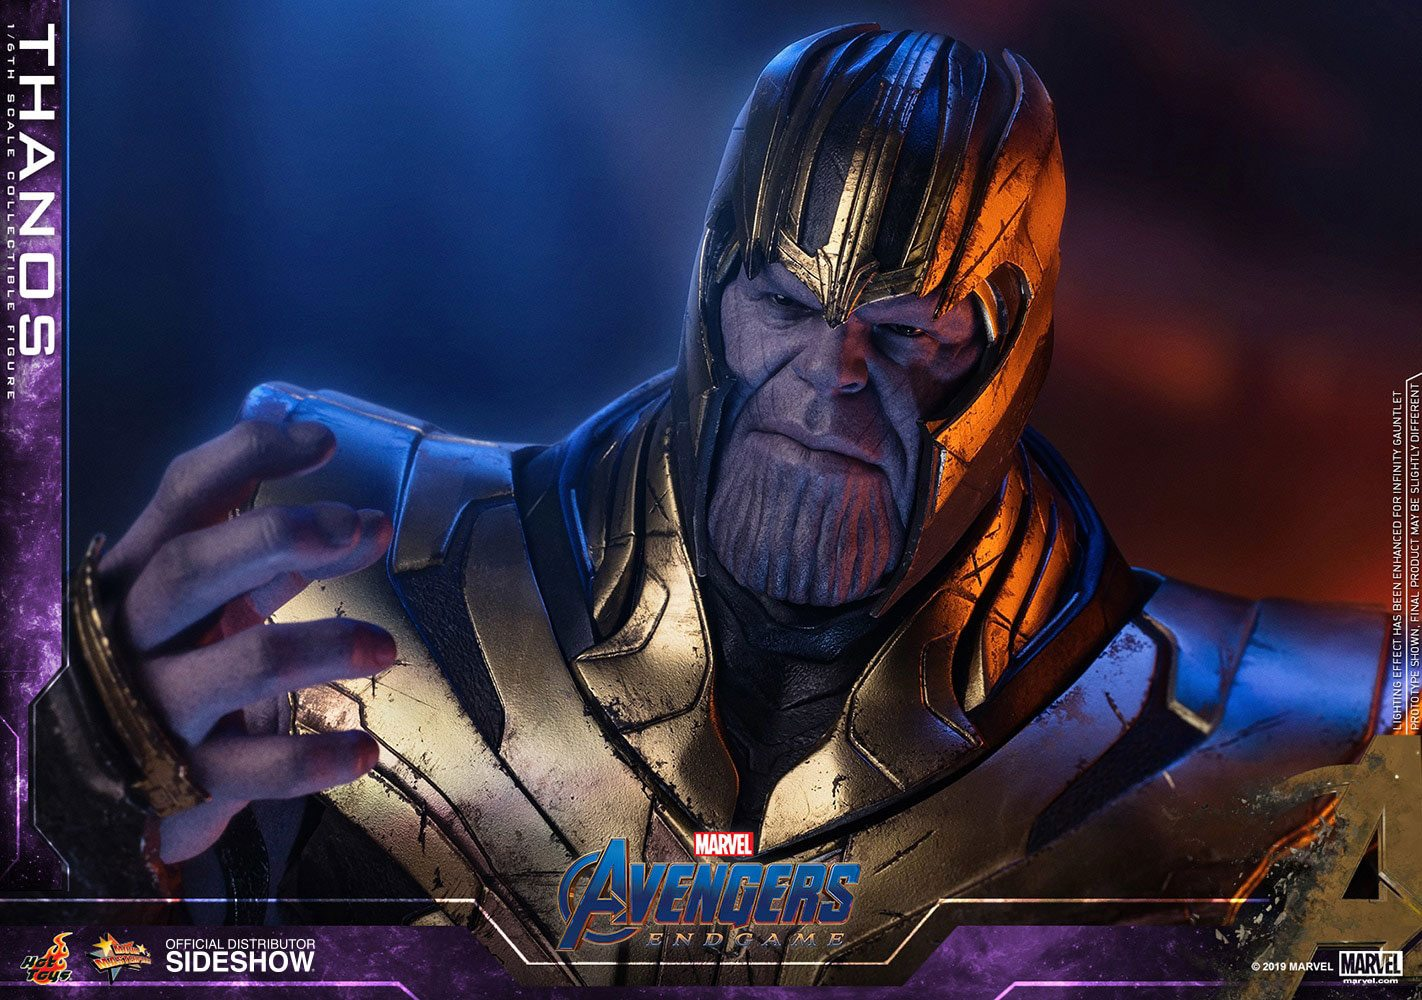 MARVEL: AVENGERS ENDGAME – THANOS with ARMOR 1/6 Action